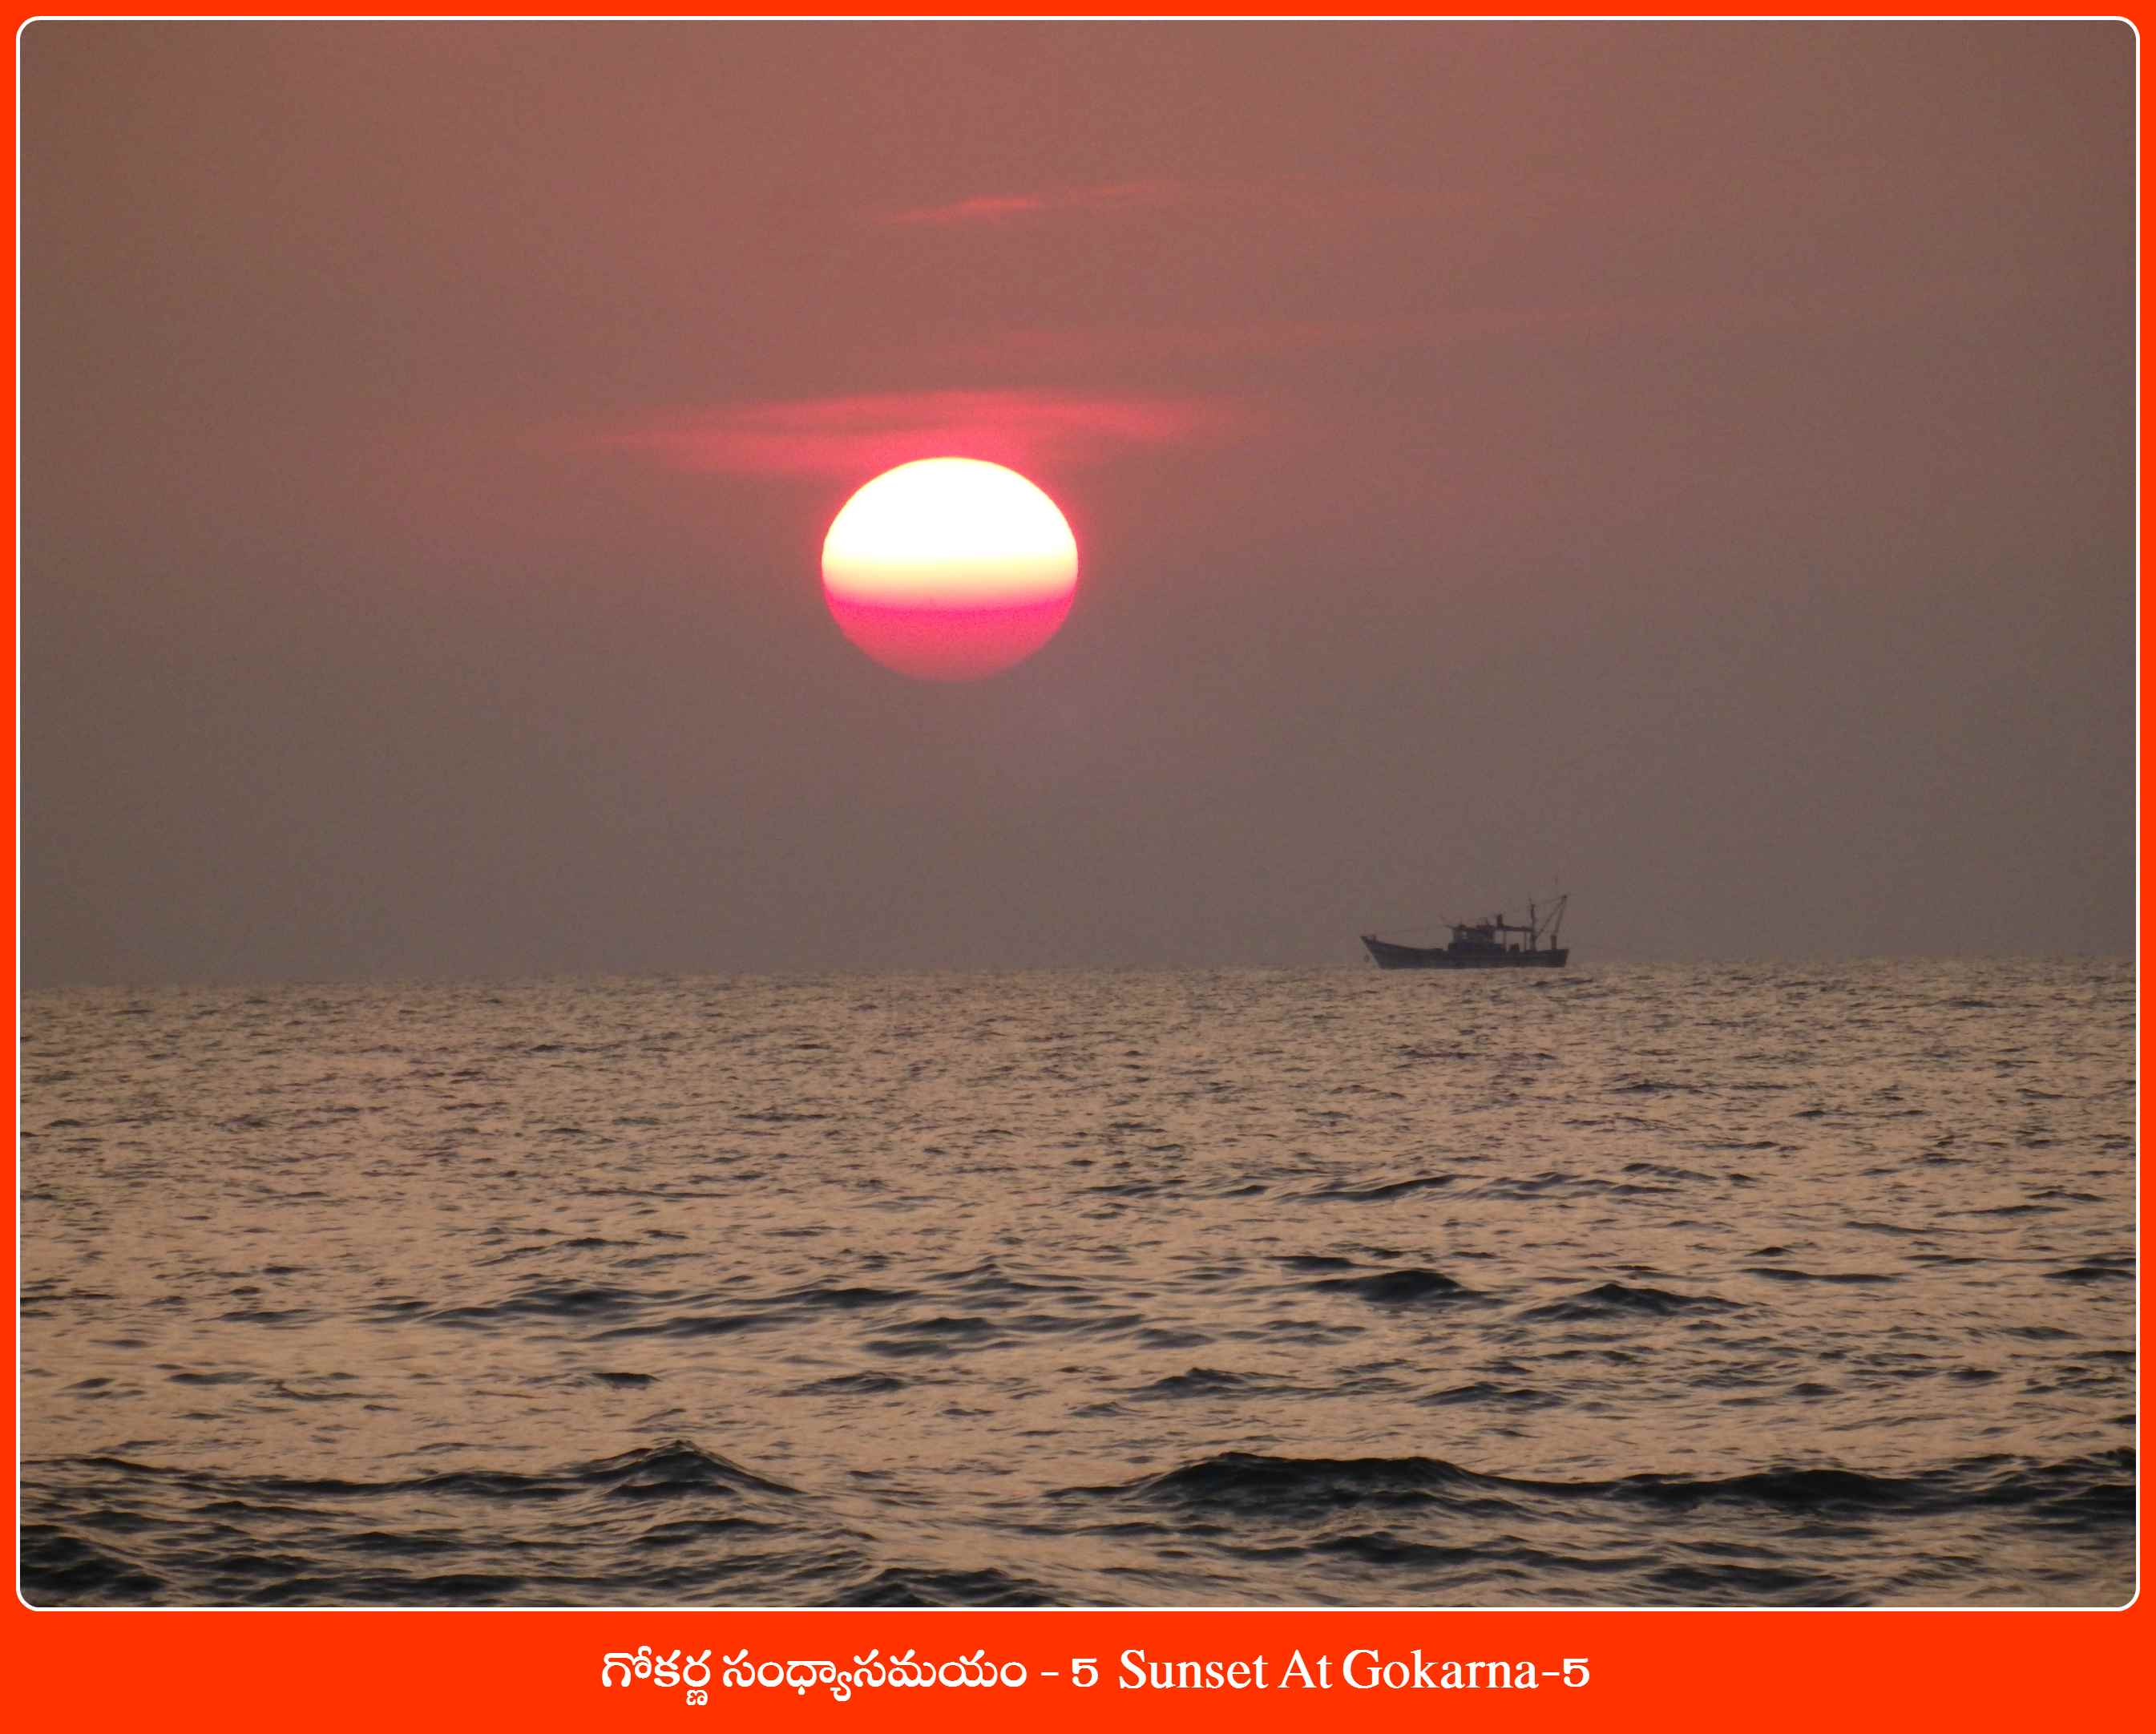 Sunset At Gokarna-5